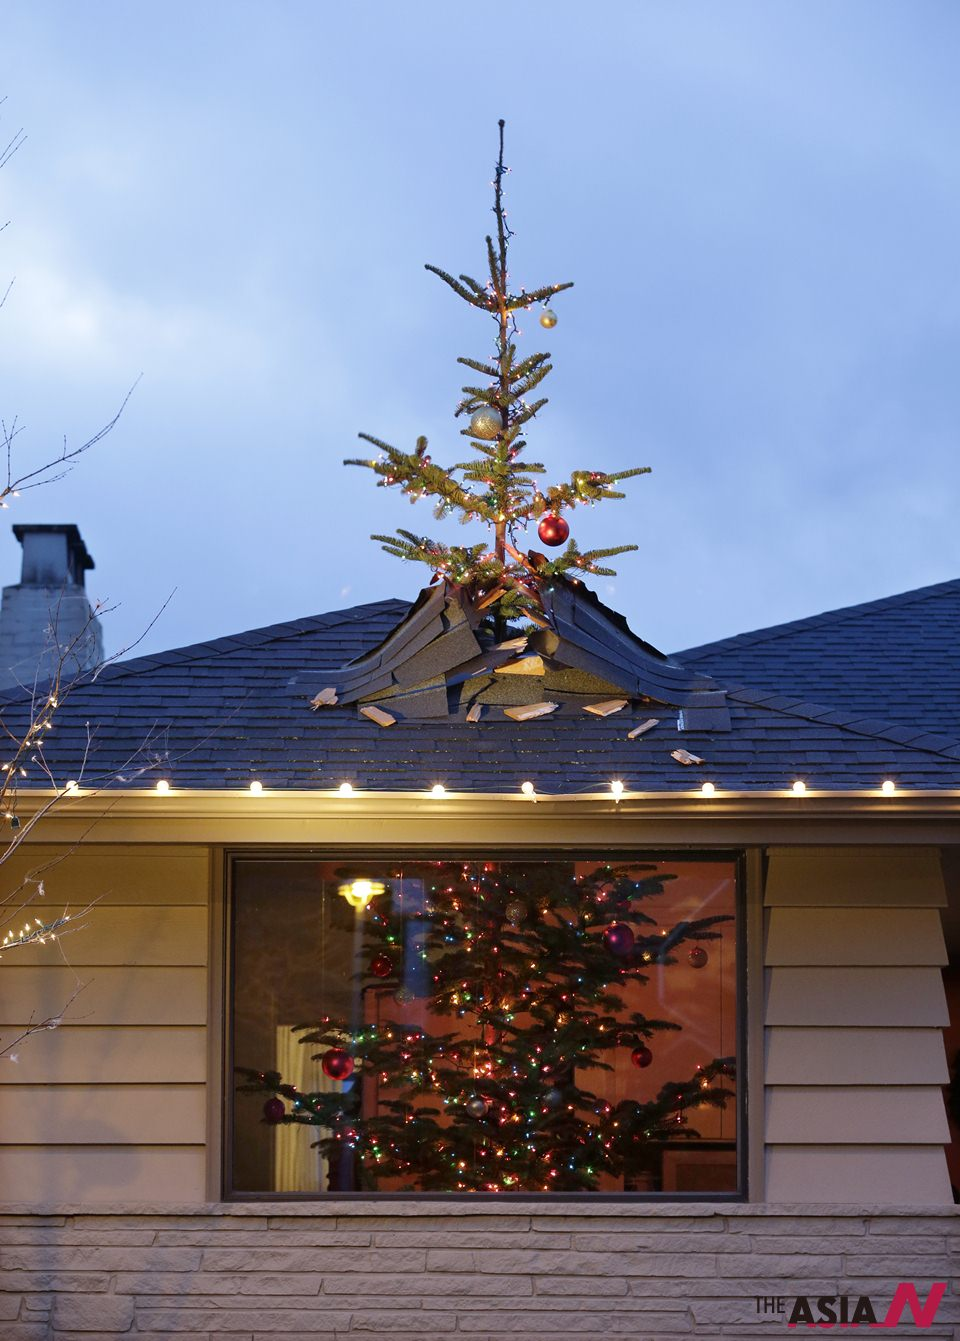 Christmas Decorations Tree Through Roof : Christmas tree made to look crashing through roof by